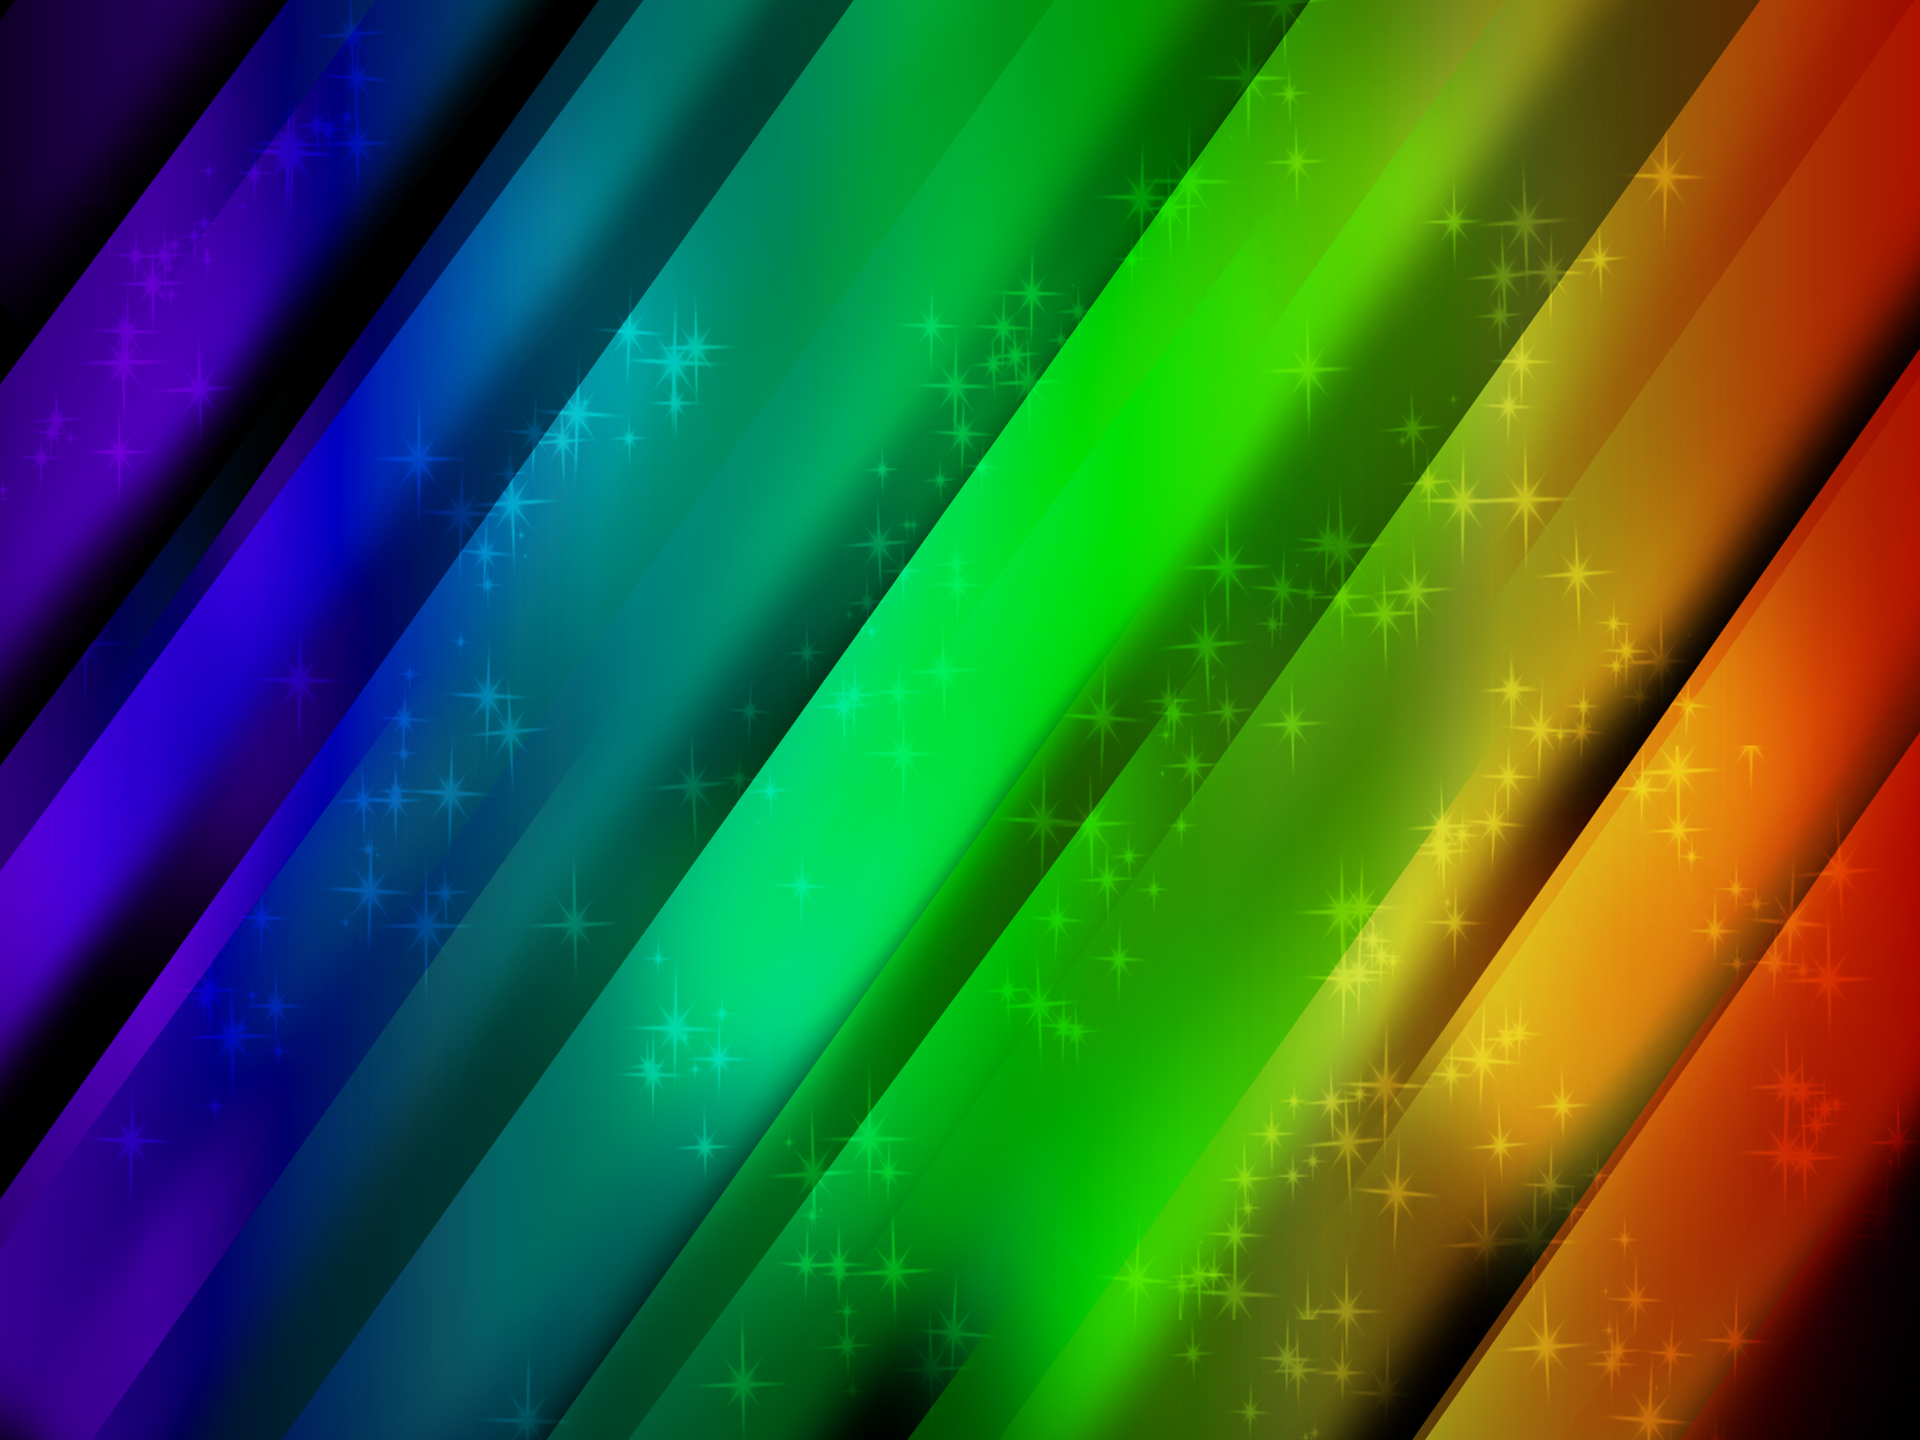 Colorful Wallpaper wallpapers